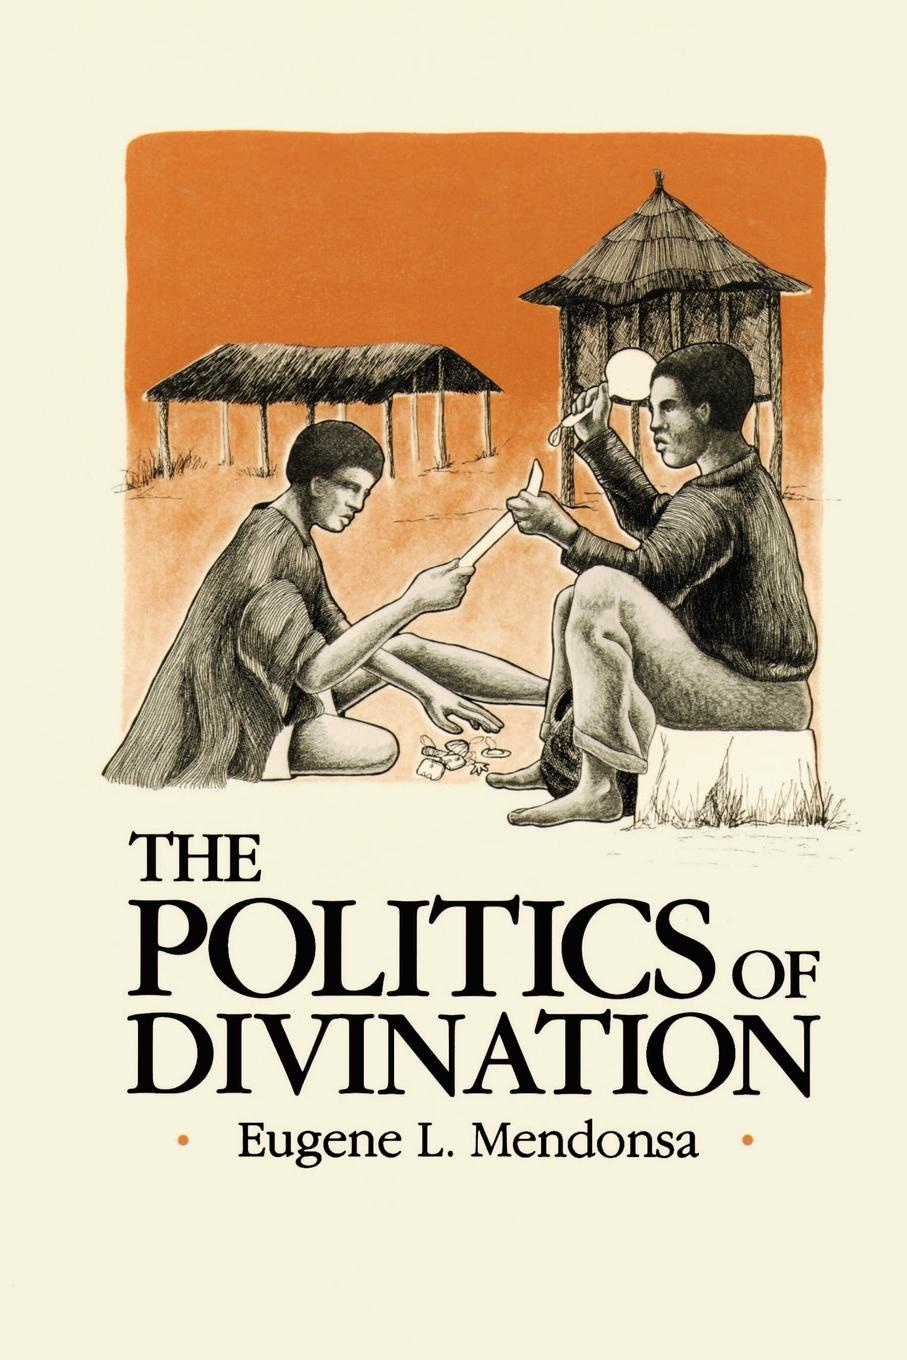 The Politics of Divination. A Processual View of Reactions to Illness and Deviance Among the Sisala of Northern Ghana. Eugene L. Mendonsa